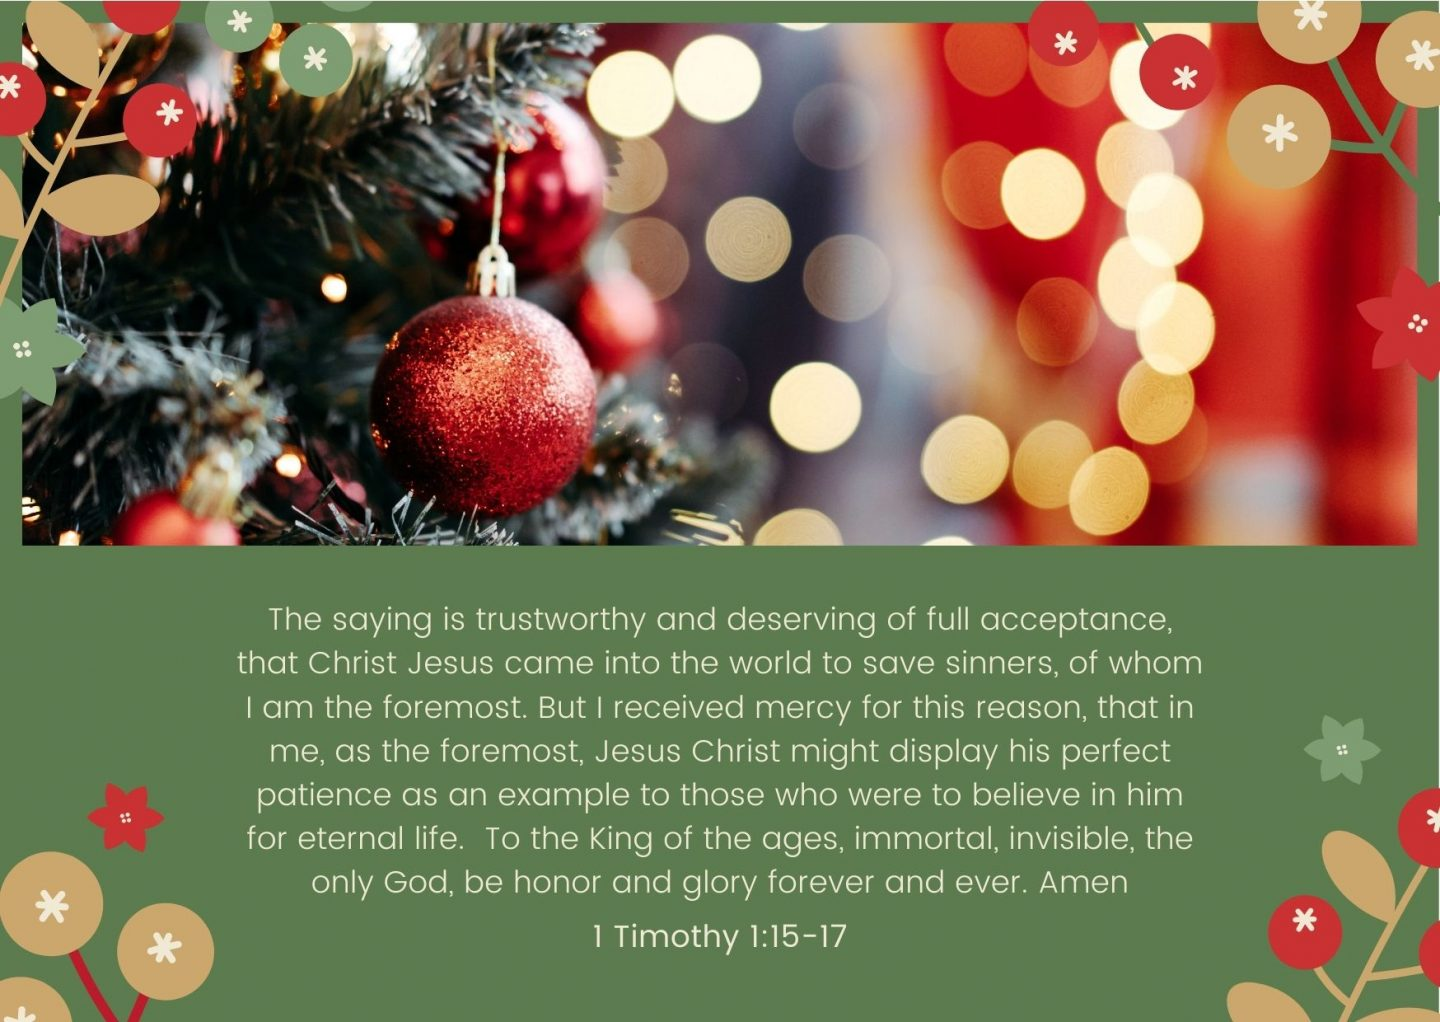 The saying is trustworthy and deserving of full acceptance, that Christ Jesus came into the world to save sinners, of whom I am the foremost. But I received mercy for this reason, that in me, as the foremost, Jesus Christ might display his perfect patience as an example to those who were to believe in him for eternal life. To the King of the ages, immortal, invisible, the only God, be honor and glory forever and ever. Amen 1 Timothy 1:15-17